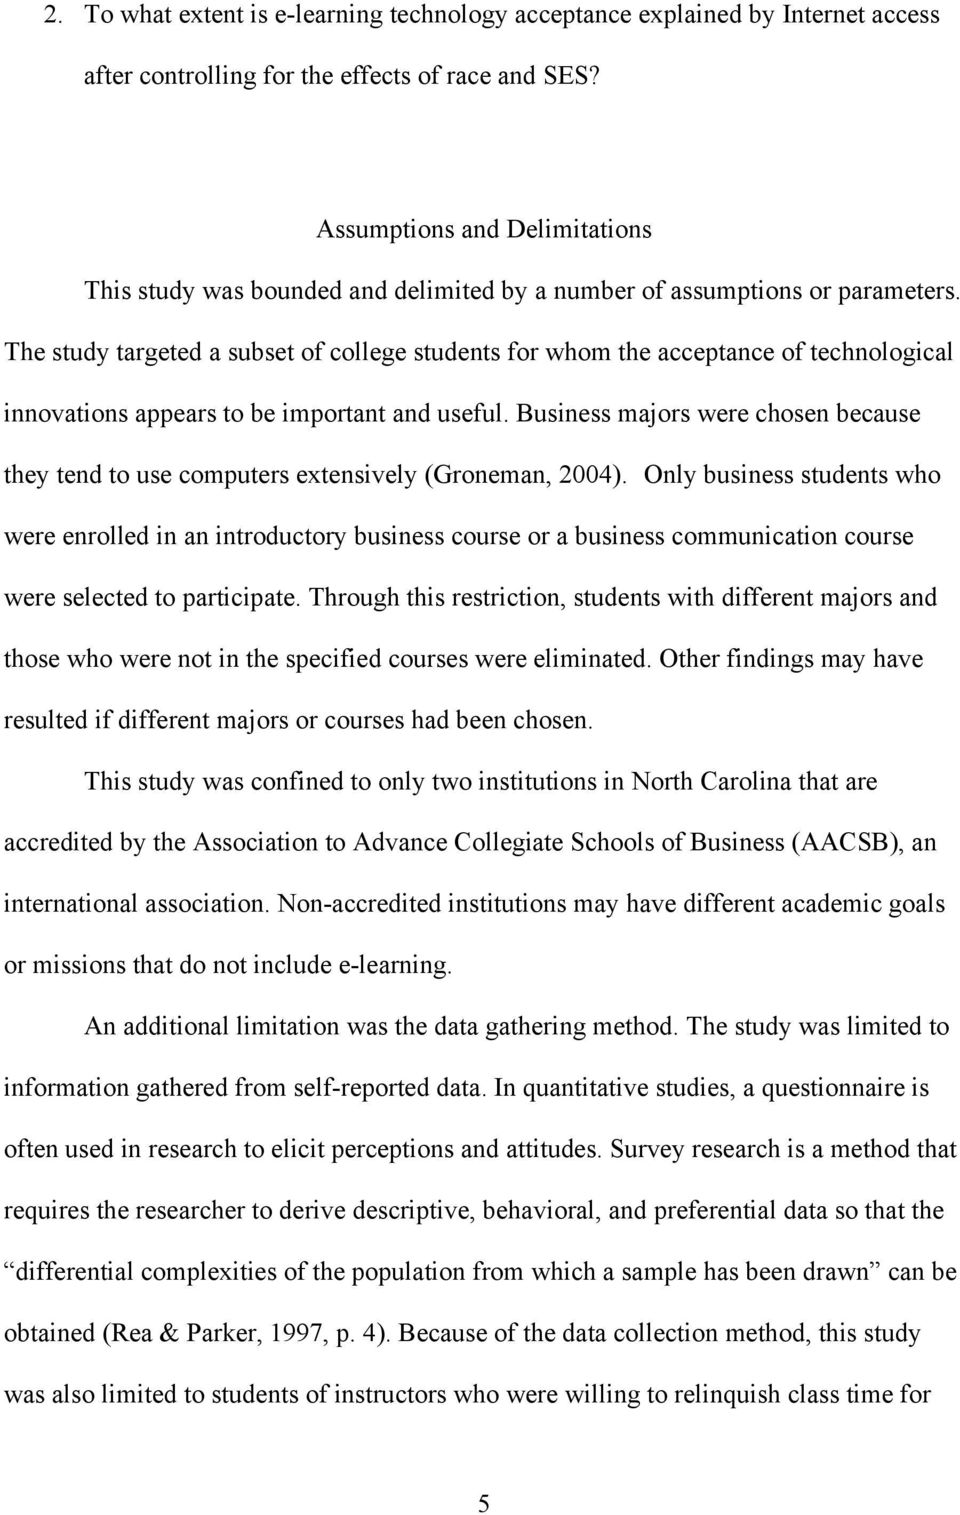 The study targeted a subset of college students for whom the acceptance of technological innovations appears to be important and useful.